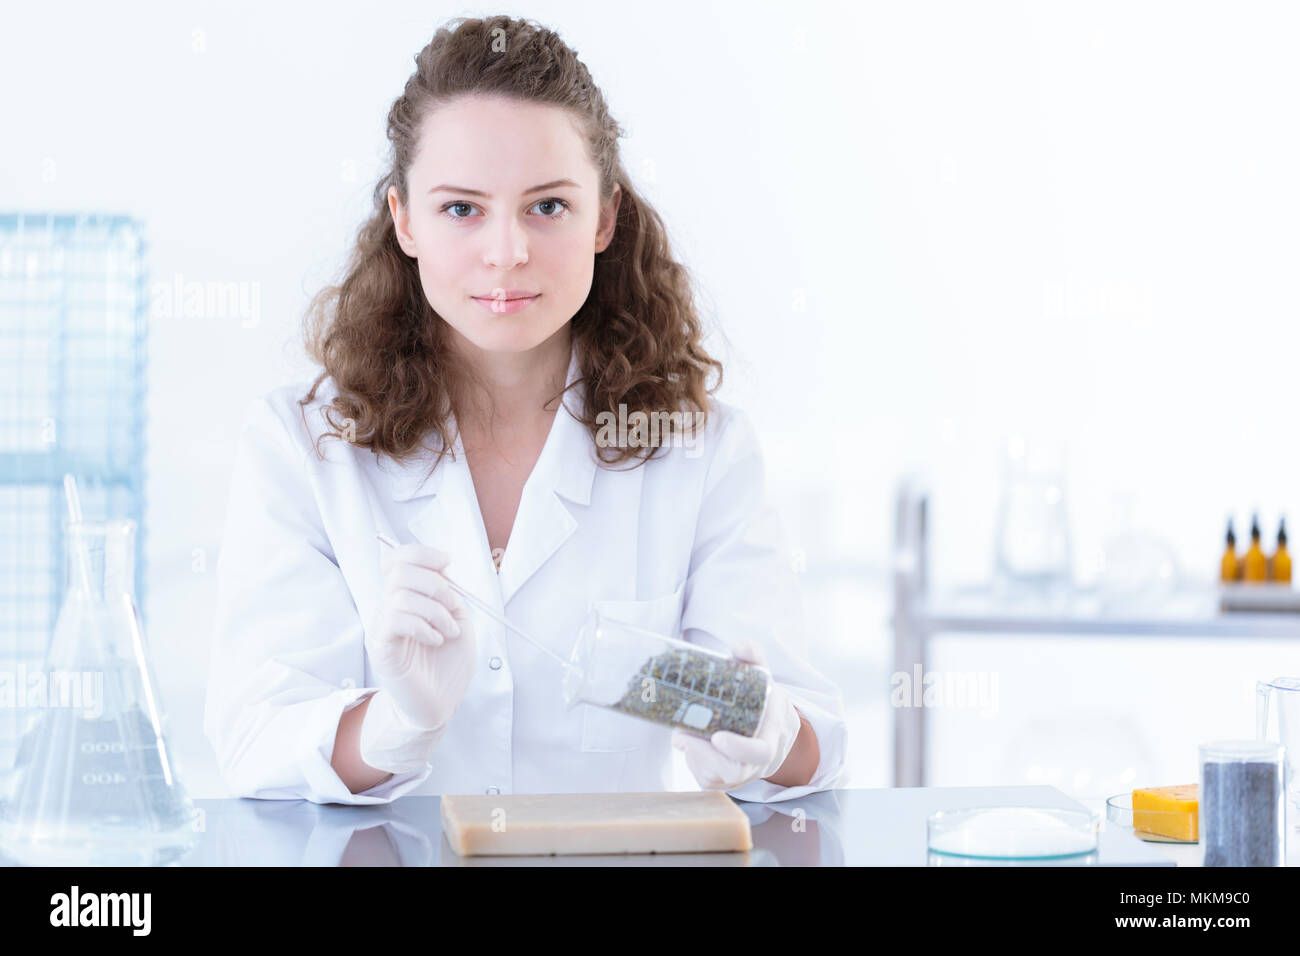 Portrait of a chemist in white uniform getting a sample of a substance from a beaker - Stock Image